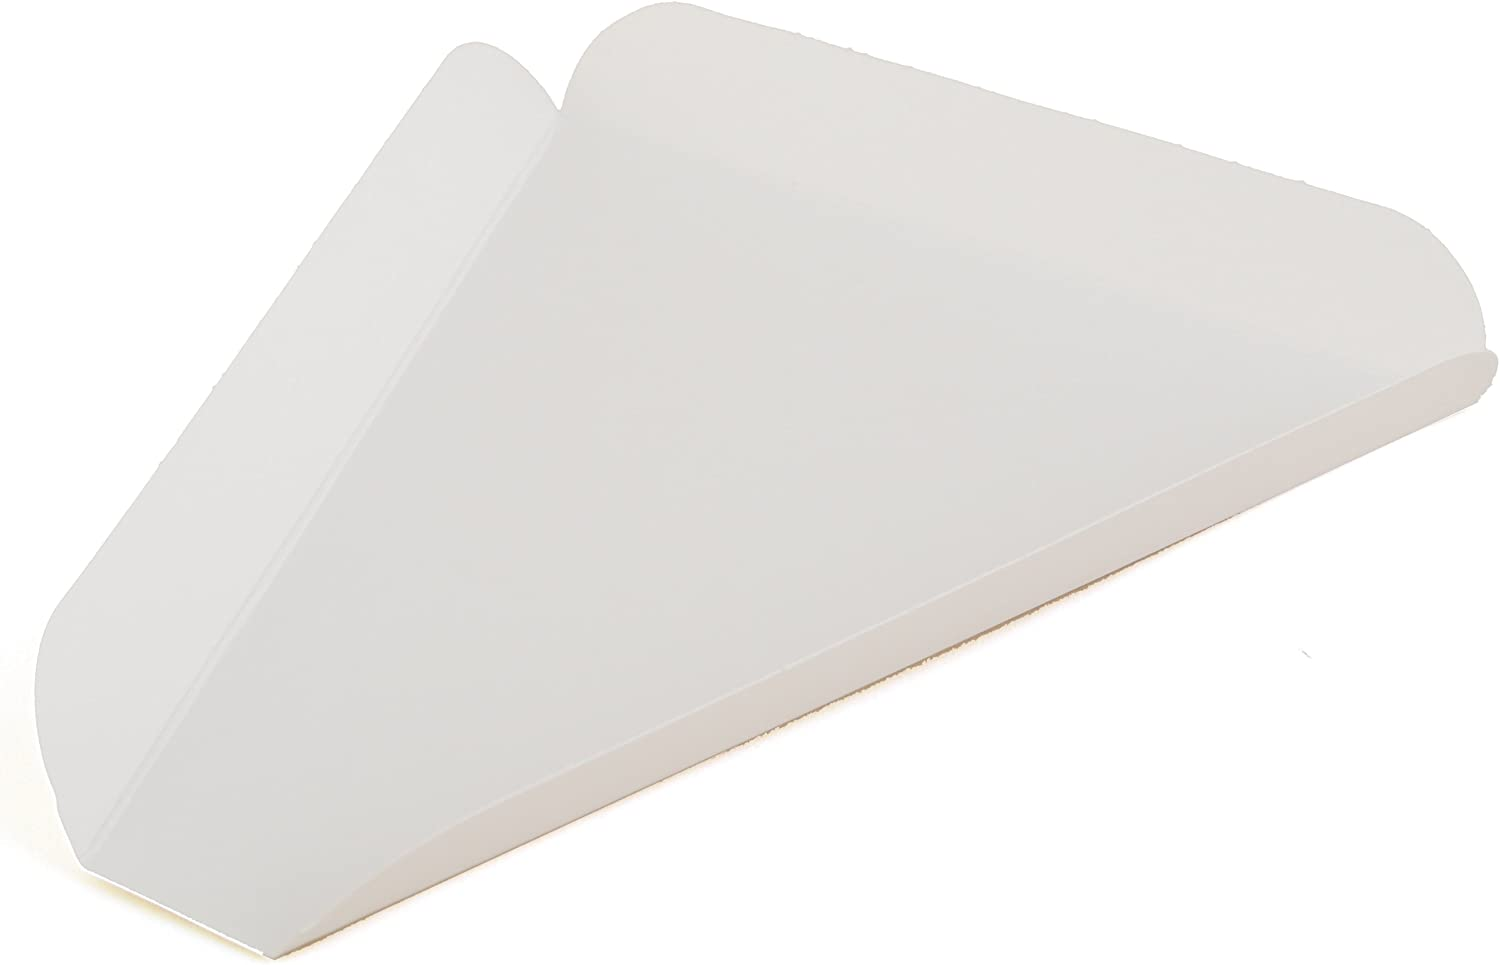 "Southern Champion Tray 1480 Paperboard White Pizza Slice Wedge, 8-7/16"" Length x 7-3/4"" Width (Case of 500)"